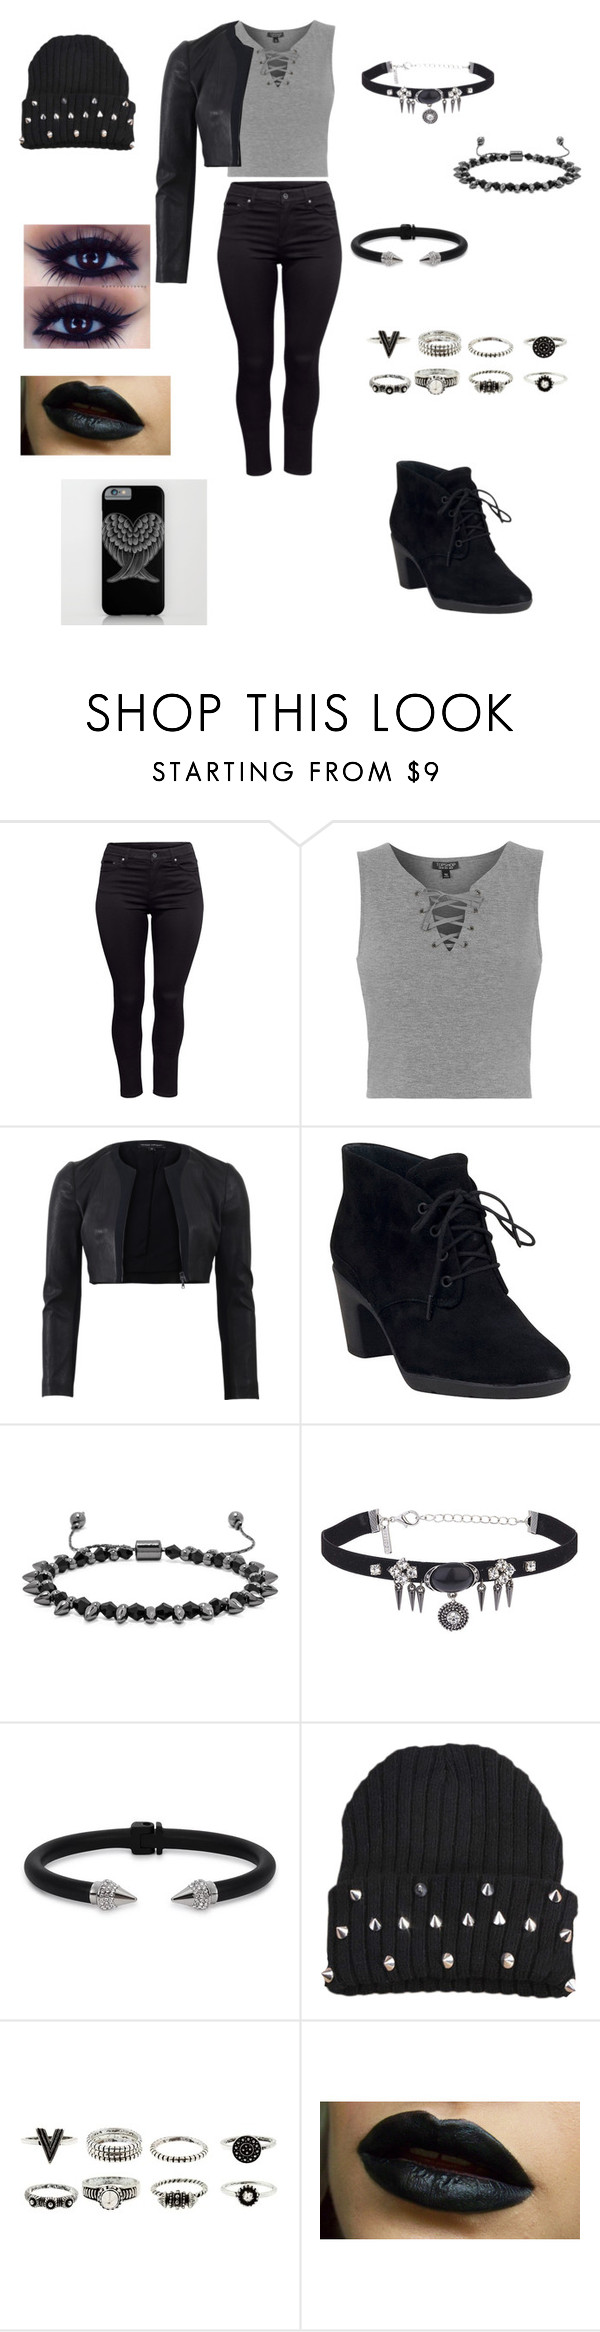 """""""Untitled #220"""" by kawaii2cute ❤ liked on Polyvore featuring H&M, Topshop, Narciso Rodriguez, Clarks, BaubleBar and Vita Fede"""